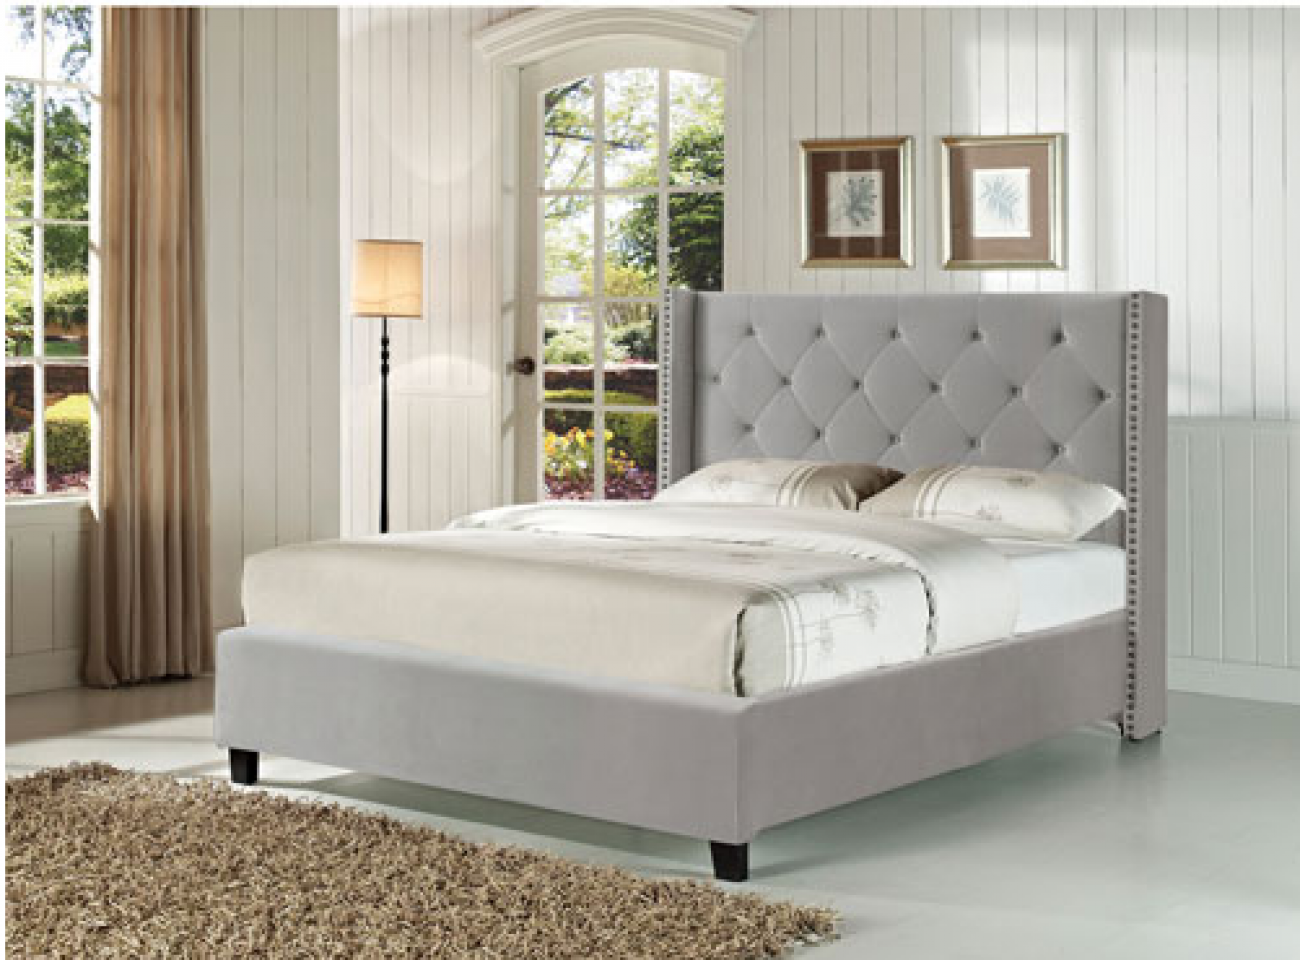 Serta Sherry Collection Transitional Upholstered Bed - Double - Grey